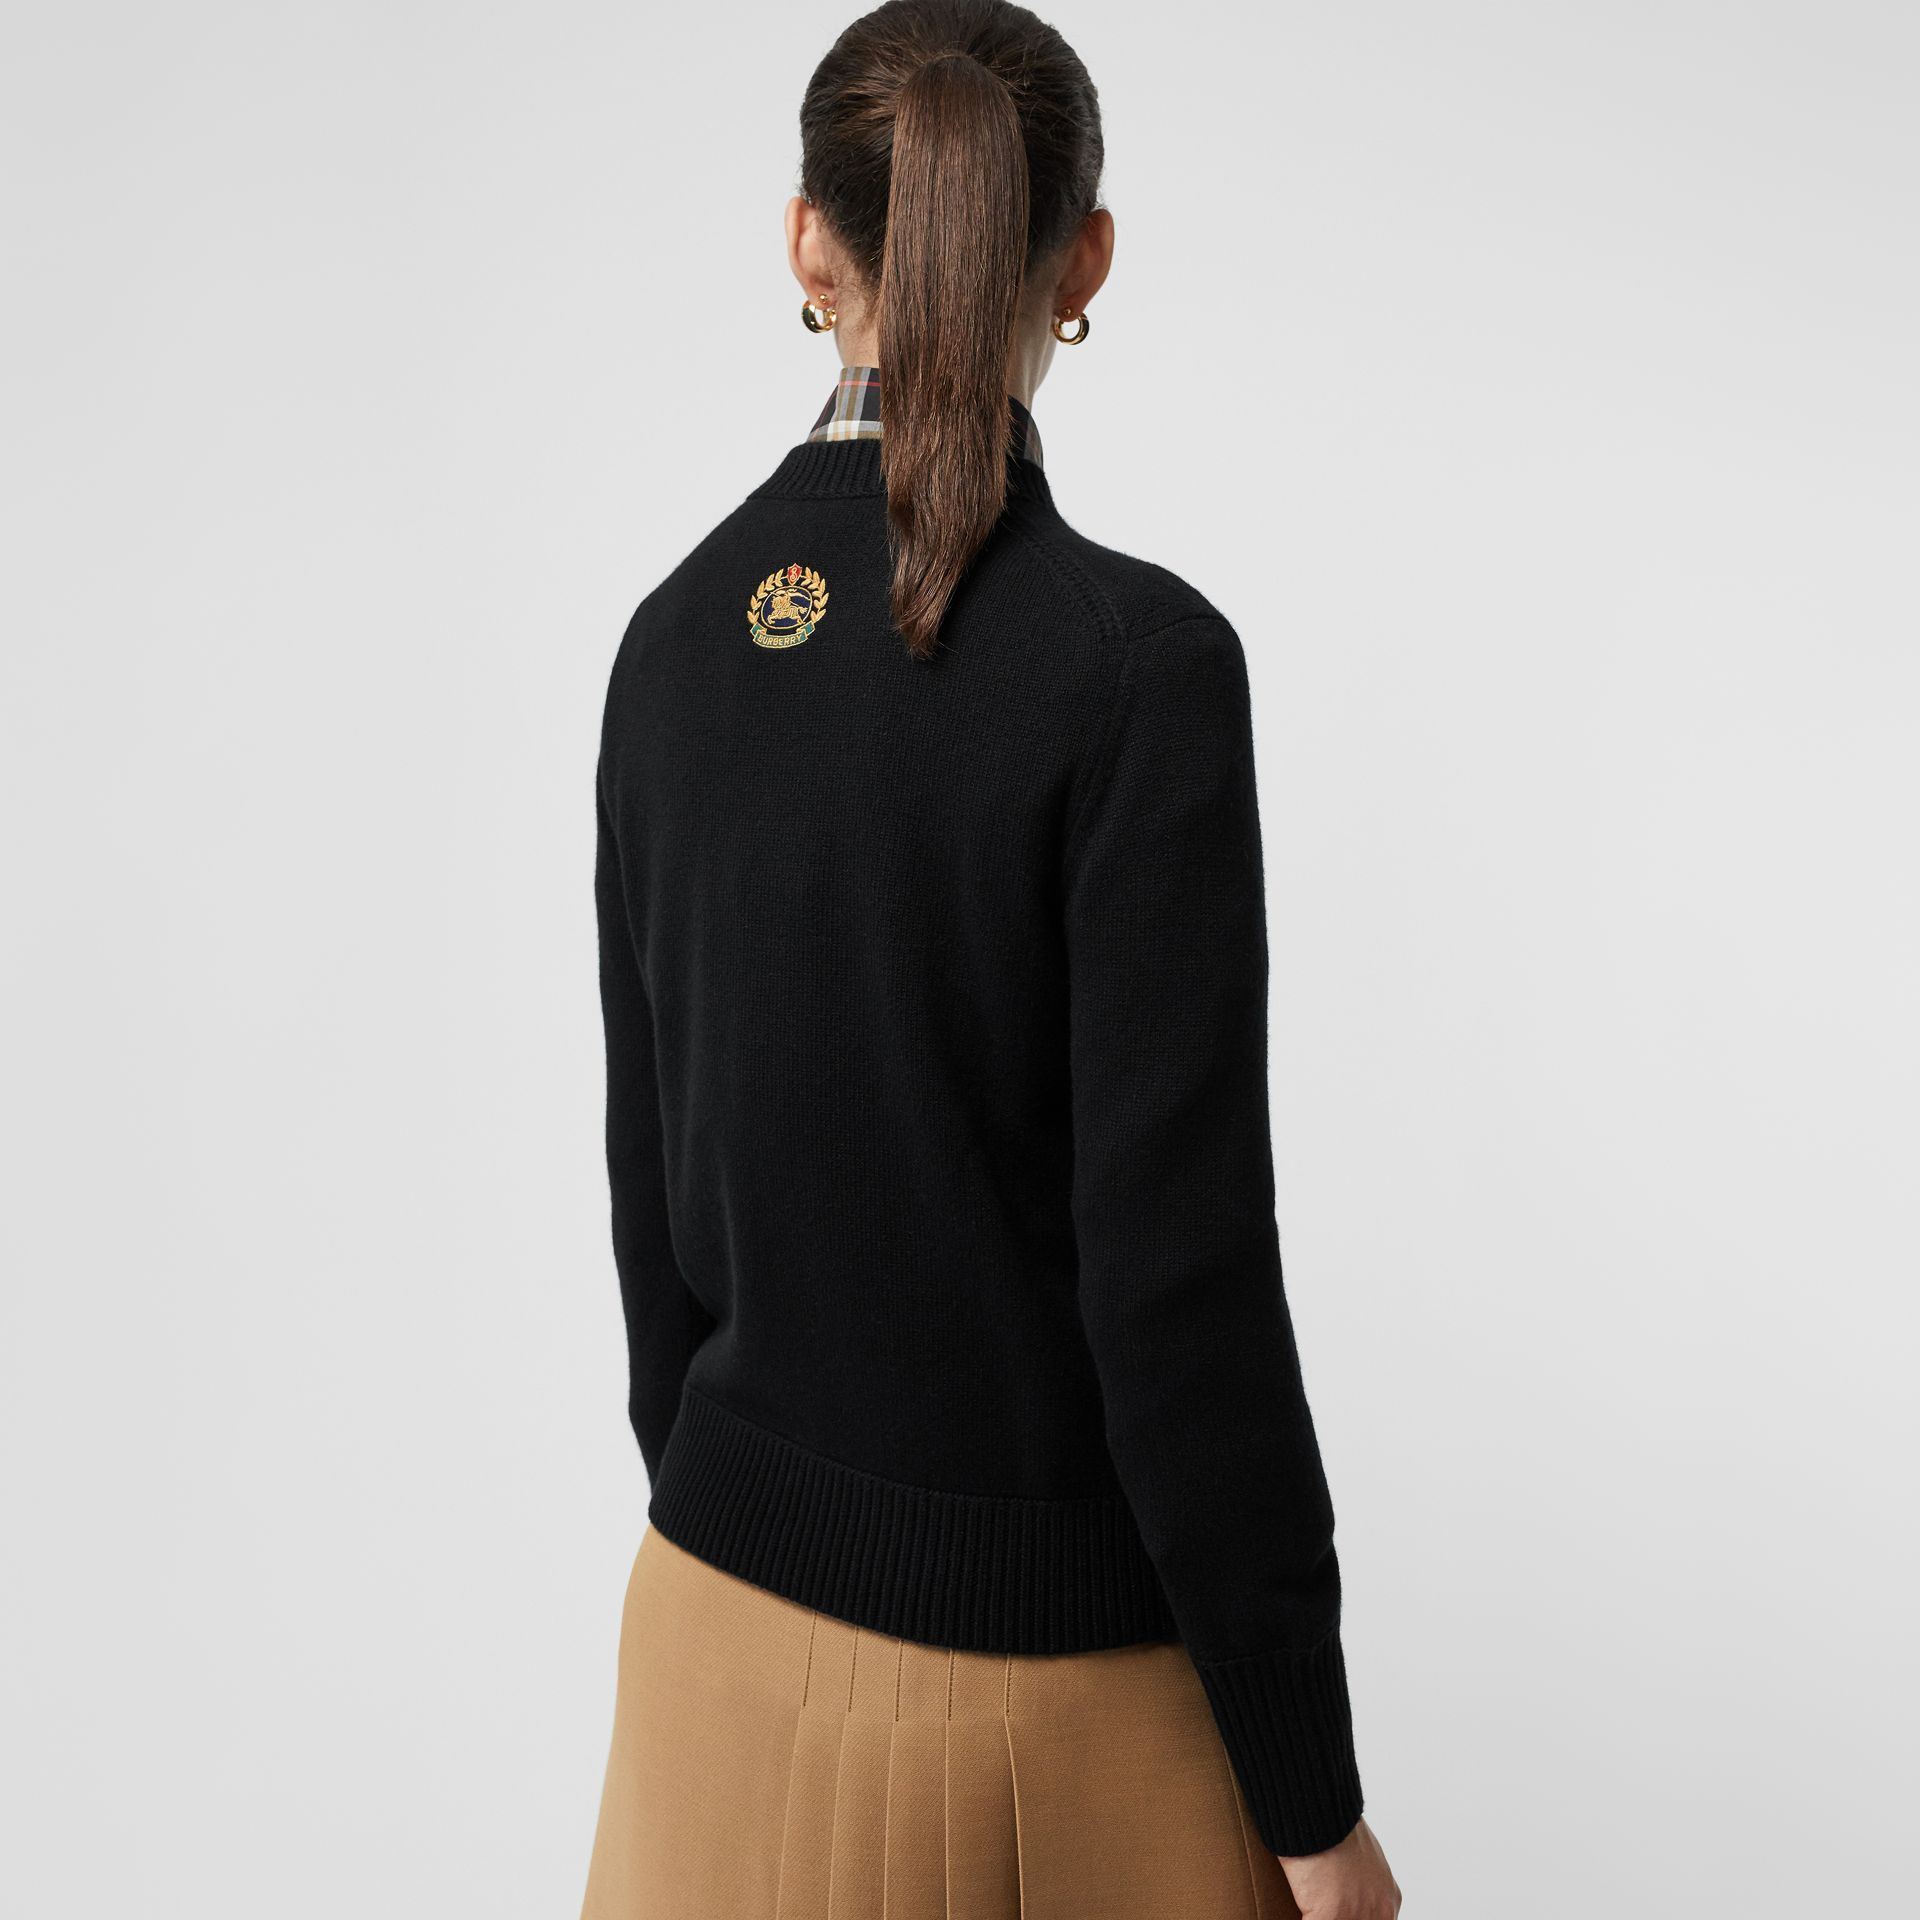 Embroidered Crest Cashmere Sweater in Black - Women | Burberry Hong Kong - gallery image 4